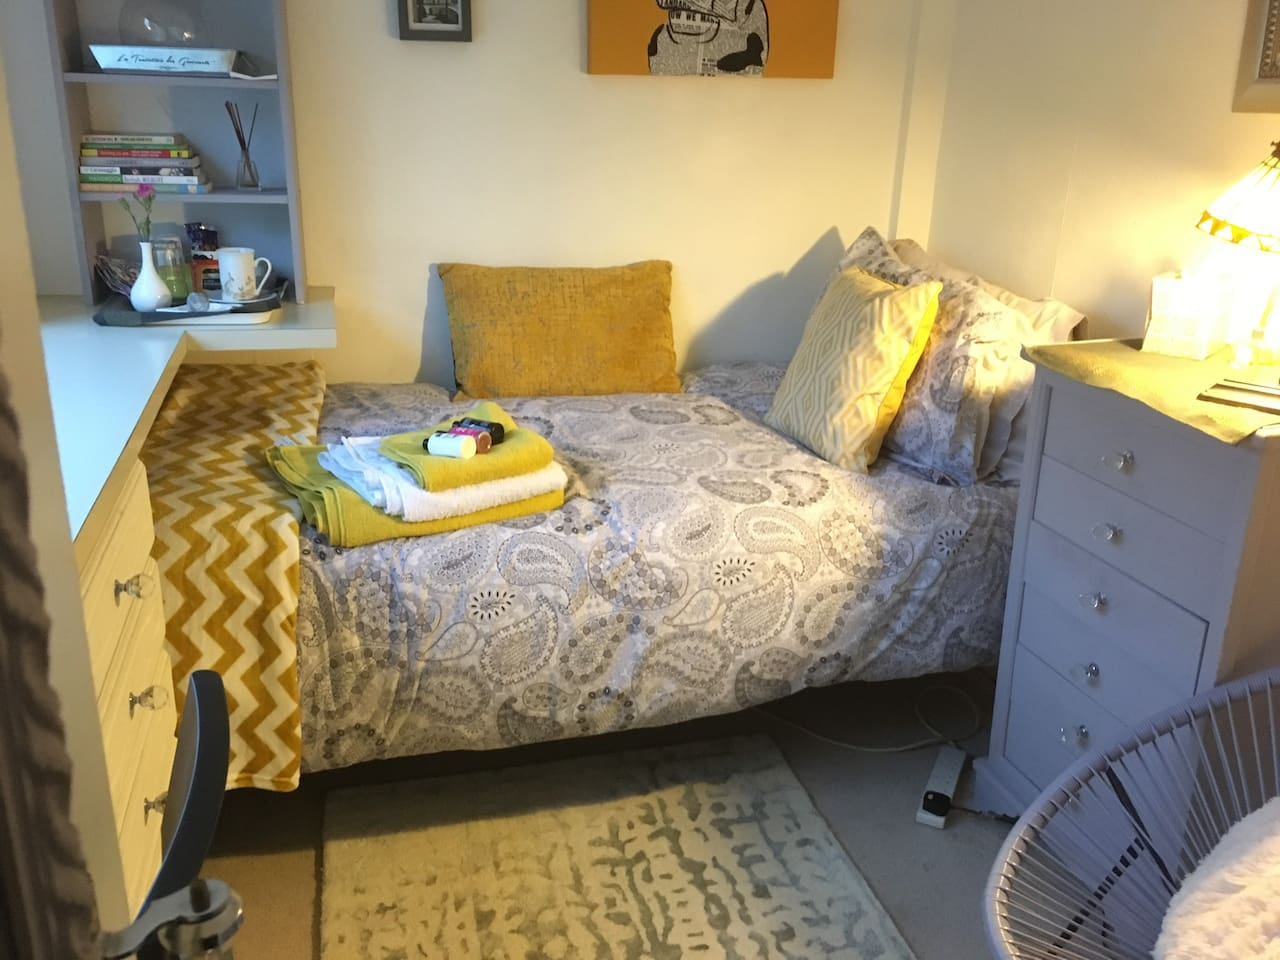 Bed drawers and chair in single room